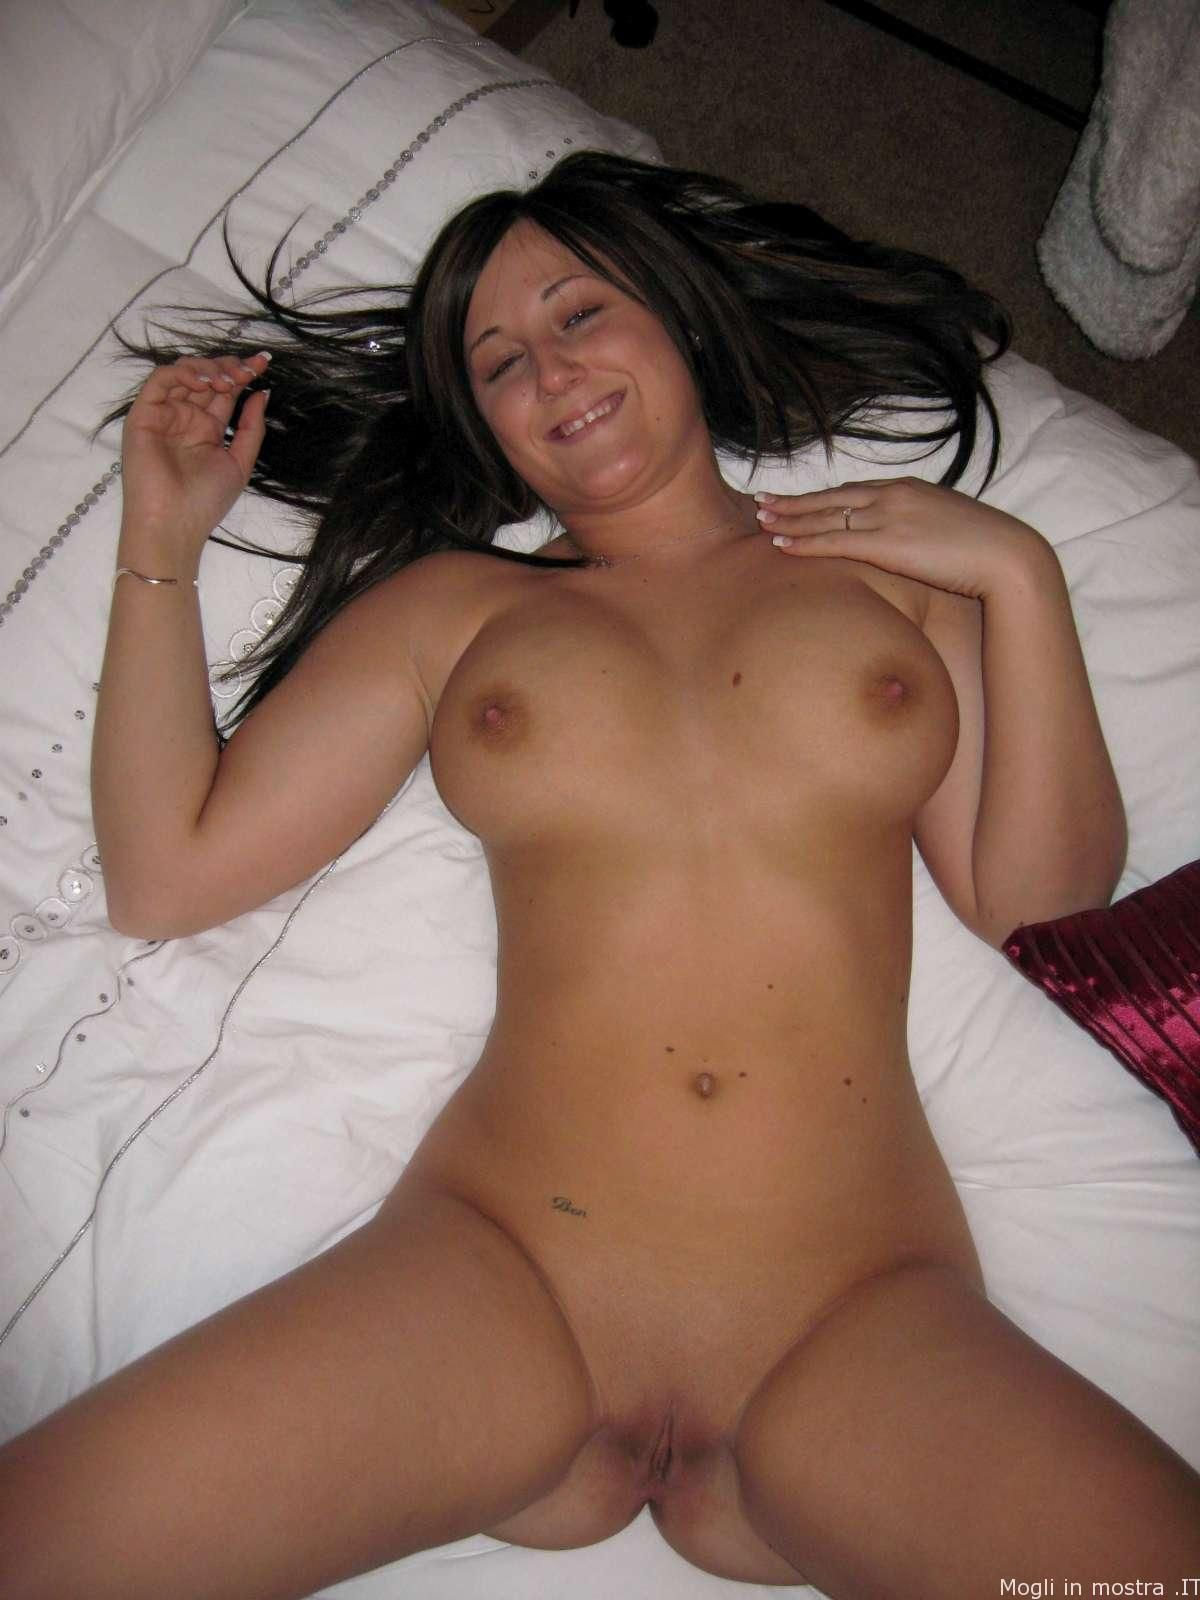 Harry laurel nude photos